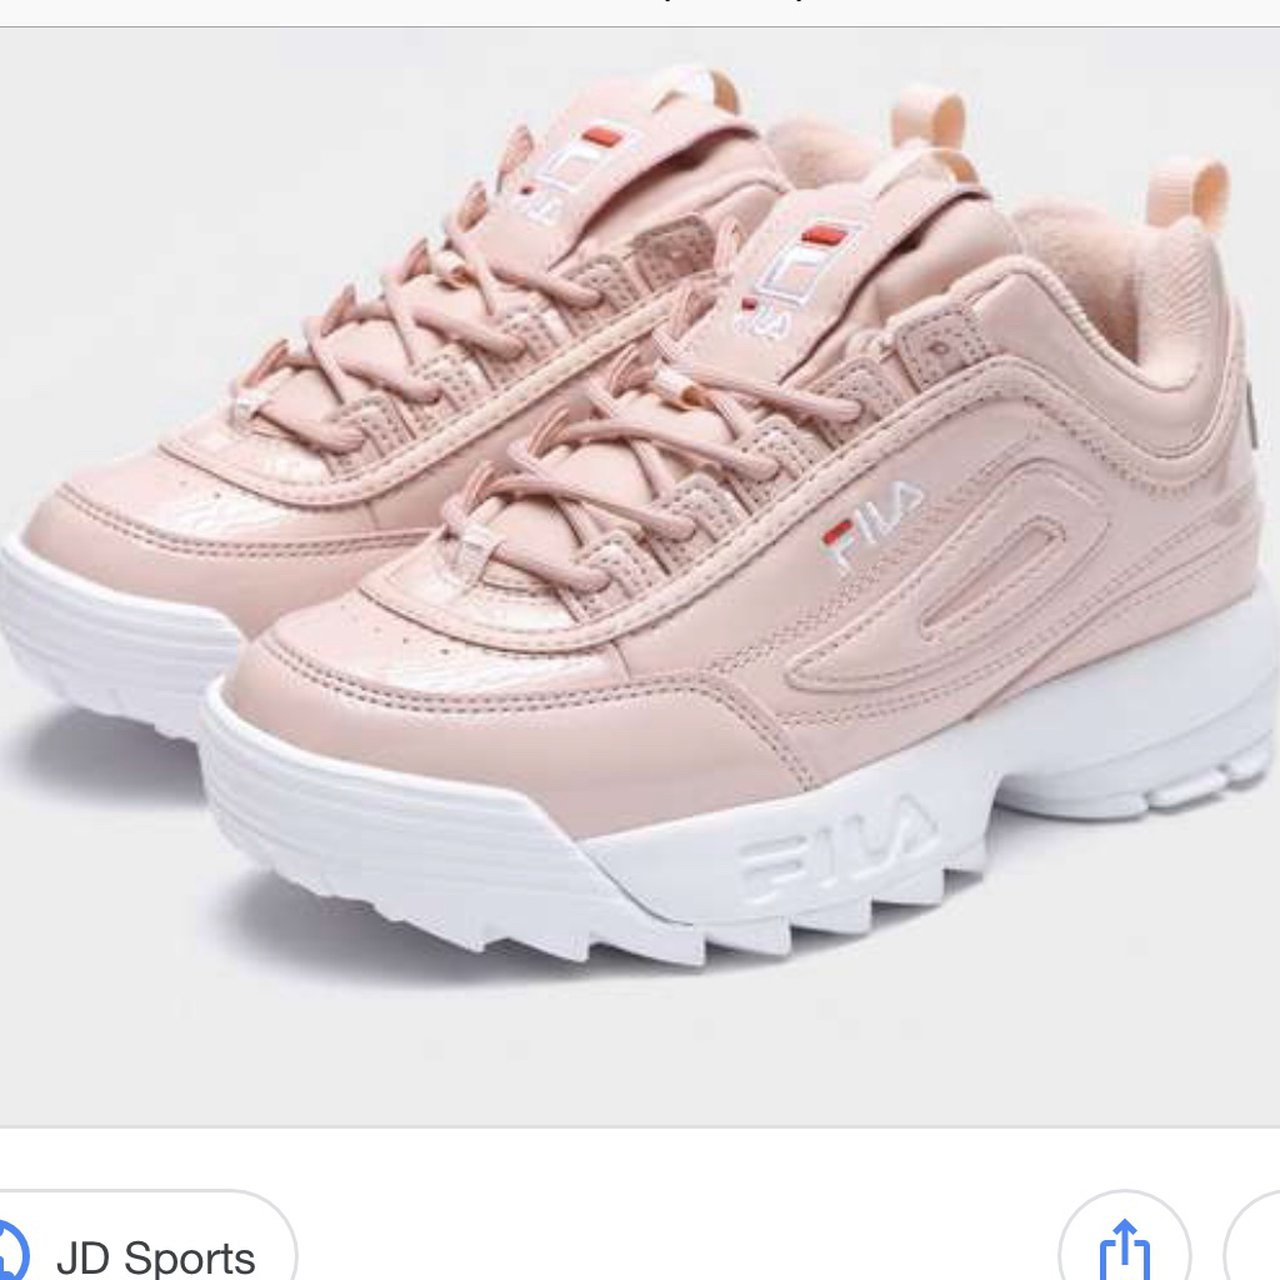 FILA BABY PINK TRAINERS, quite worn but